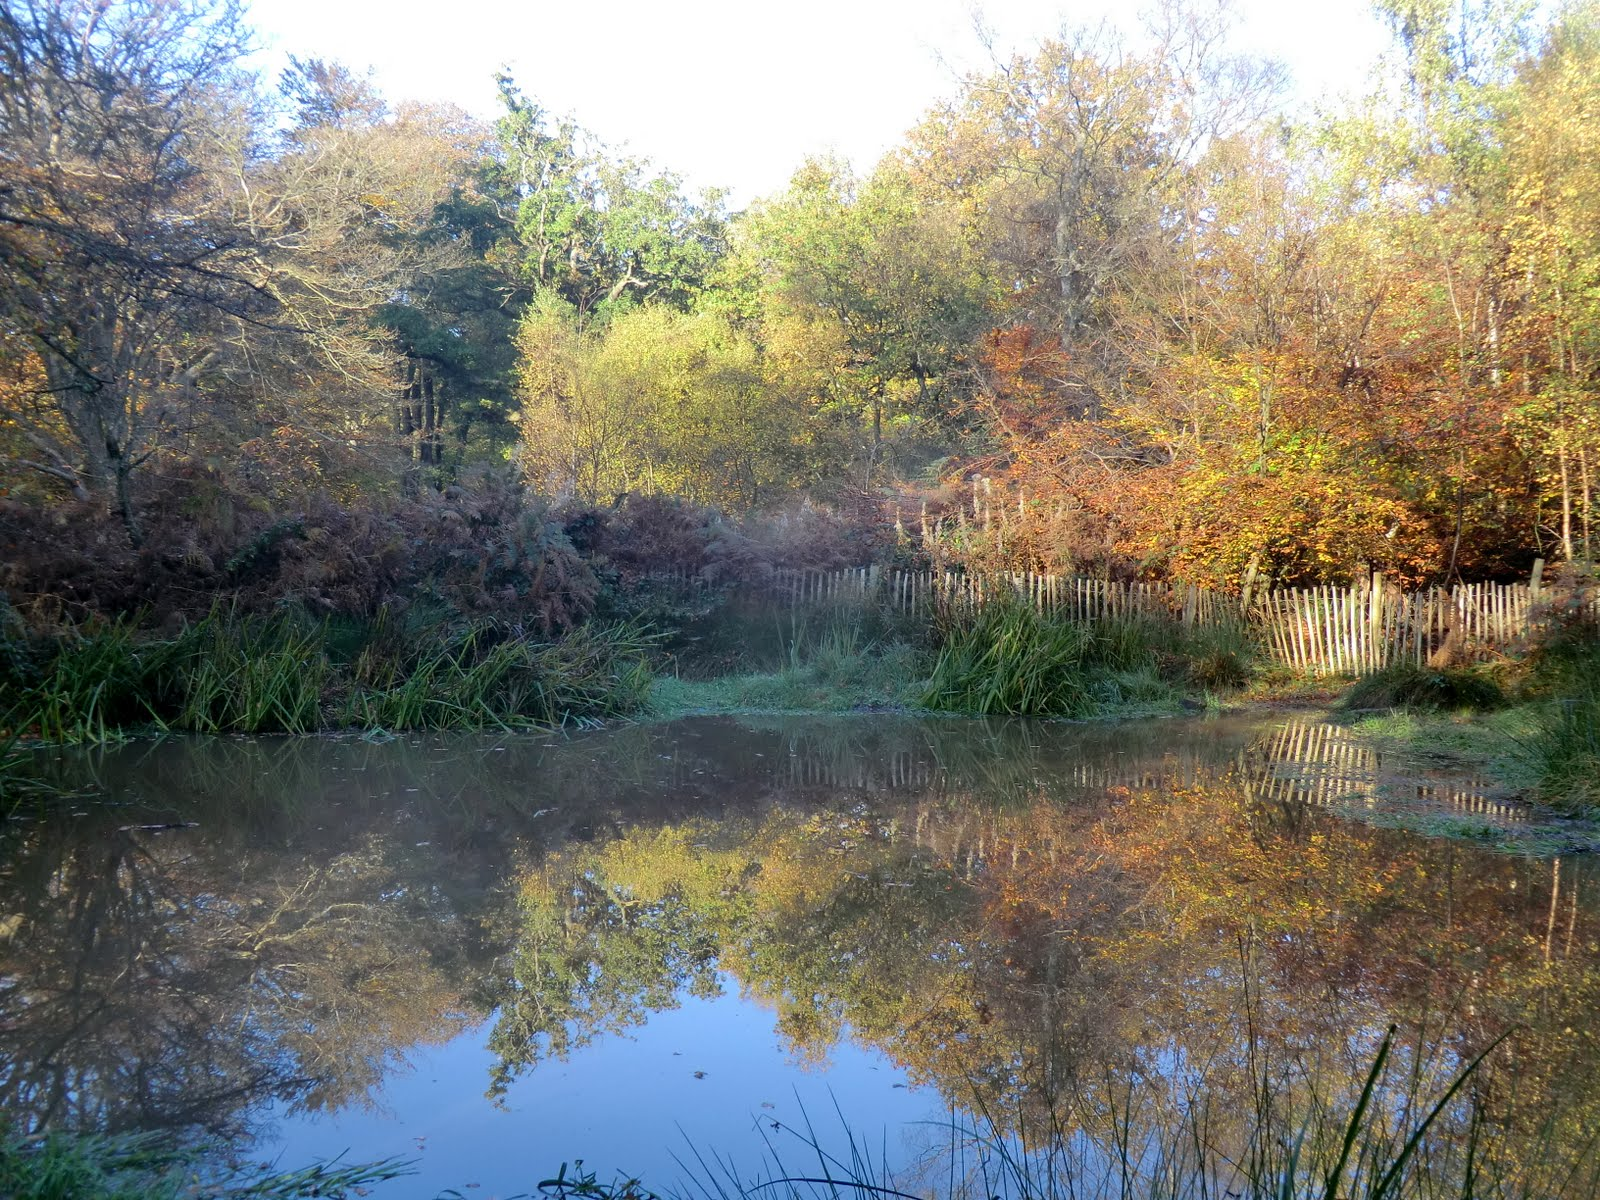 CIMG0994 Pond in autumn, Banstead Wood